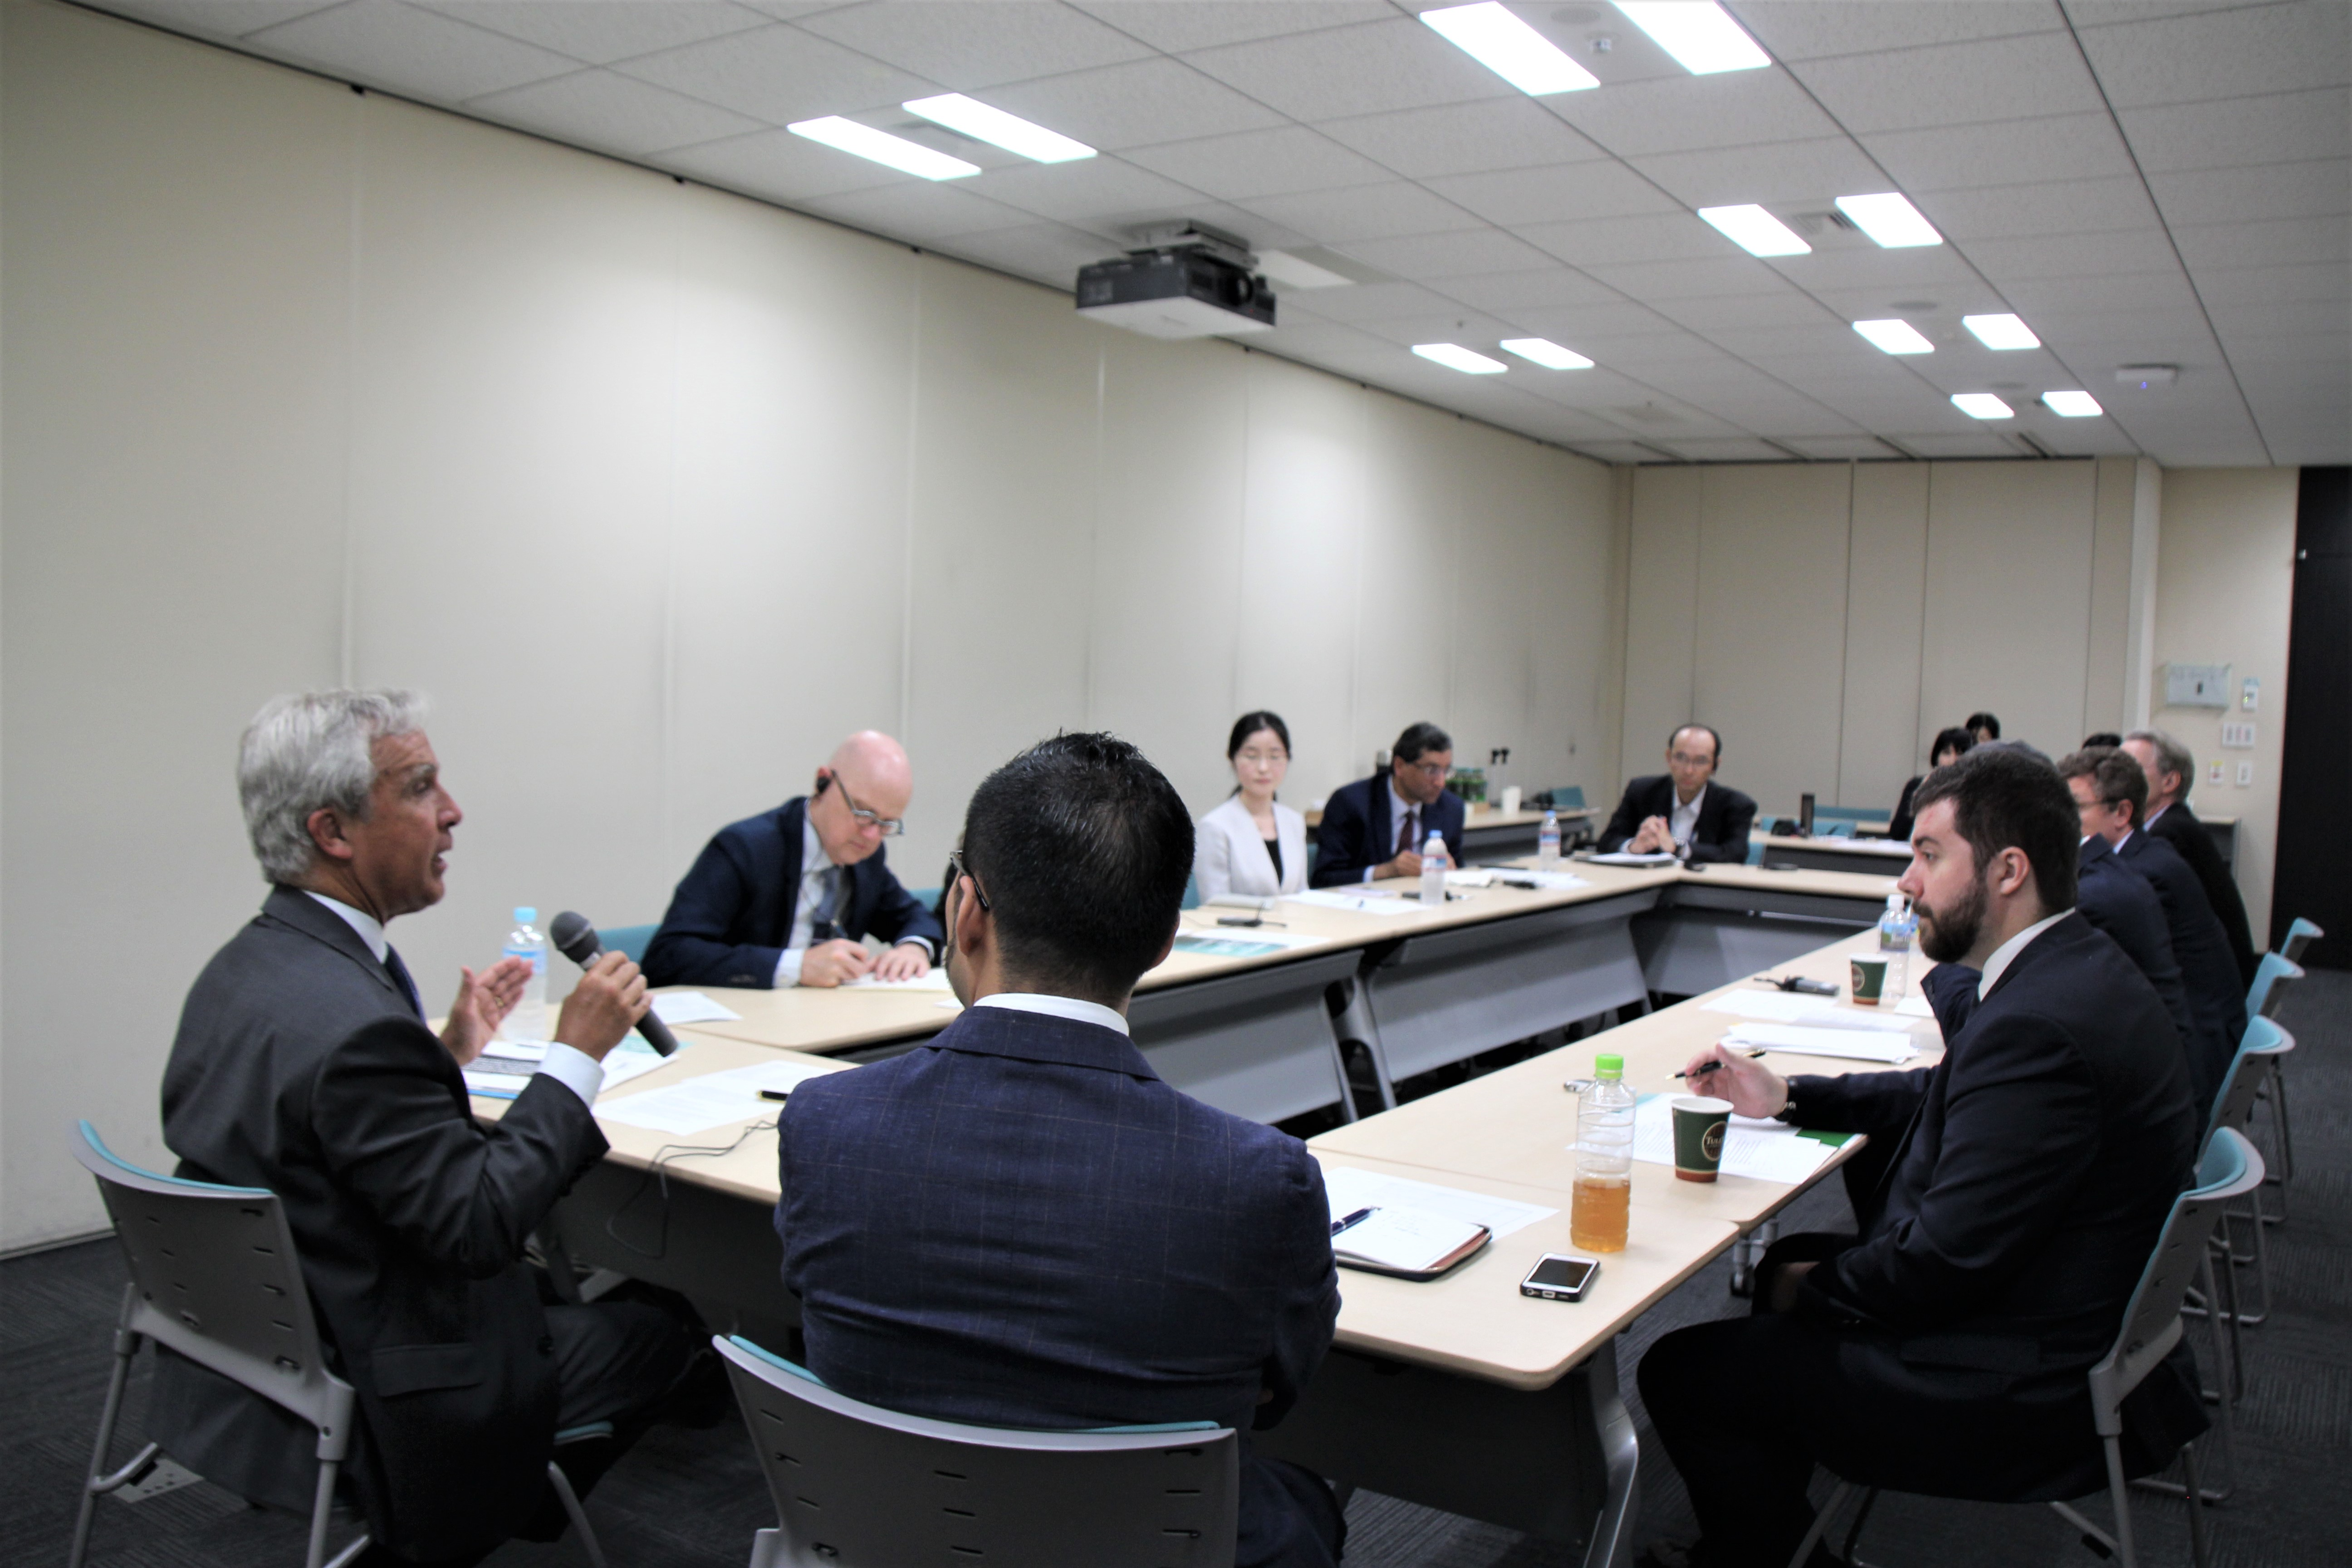 [Event Report] HGPI-GCOA Joint Roundtable: Vaccine Policies Within the G20 Global Health Agenda (June 5, 2019)